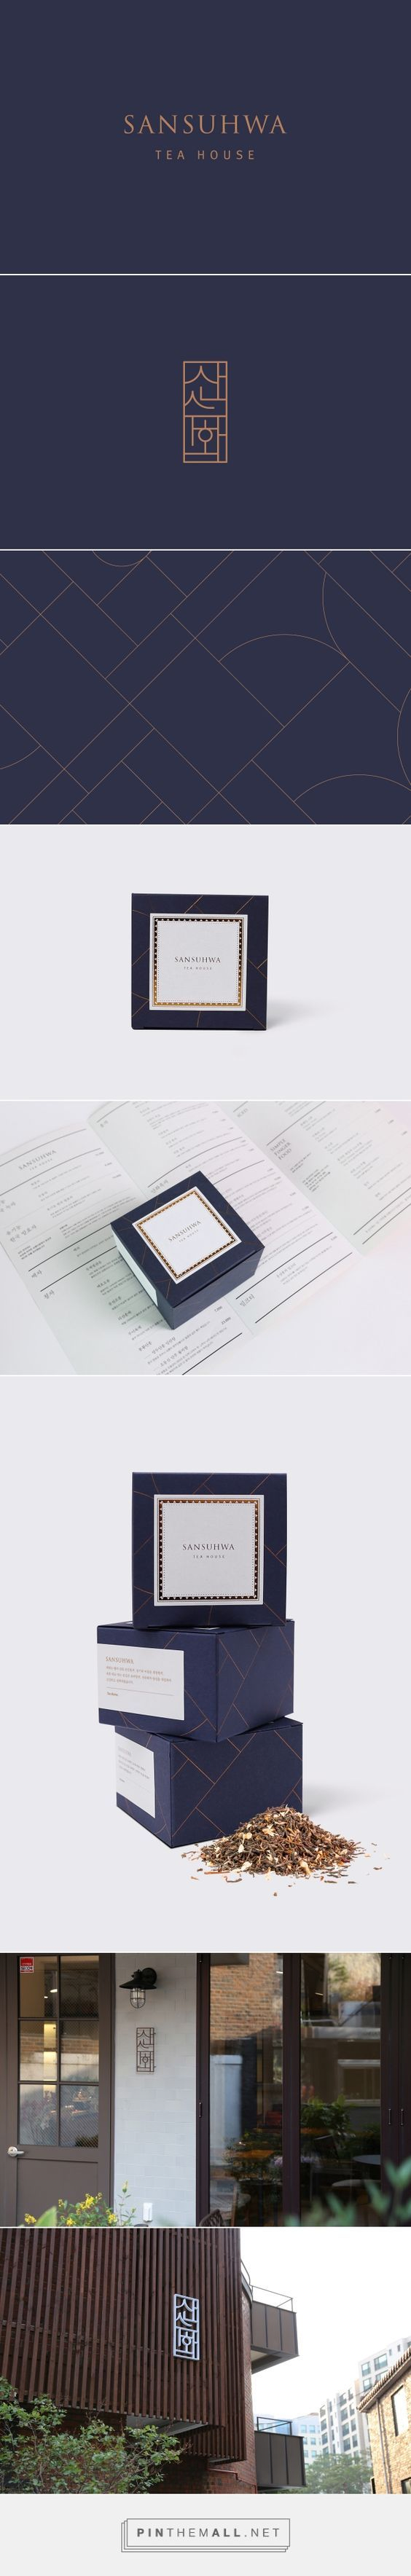 Sansuhwa Tea House | It is our intention in this work to symbolize the blending of Korean Hangul typography with splendid scenery of the mountain and river which has expressed in Sansuhwa. Also, we have used to extend some of this symbols with harmony of straight lines and curves into patterns for various packaging design. | STUDIO FLAG: